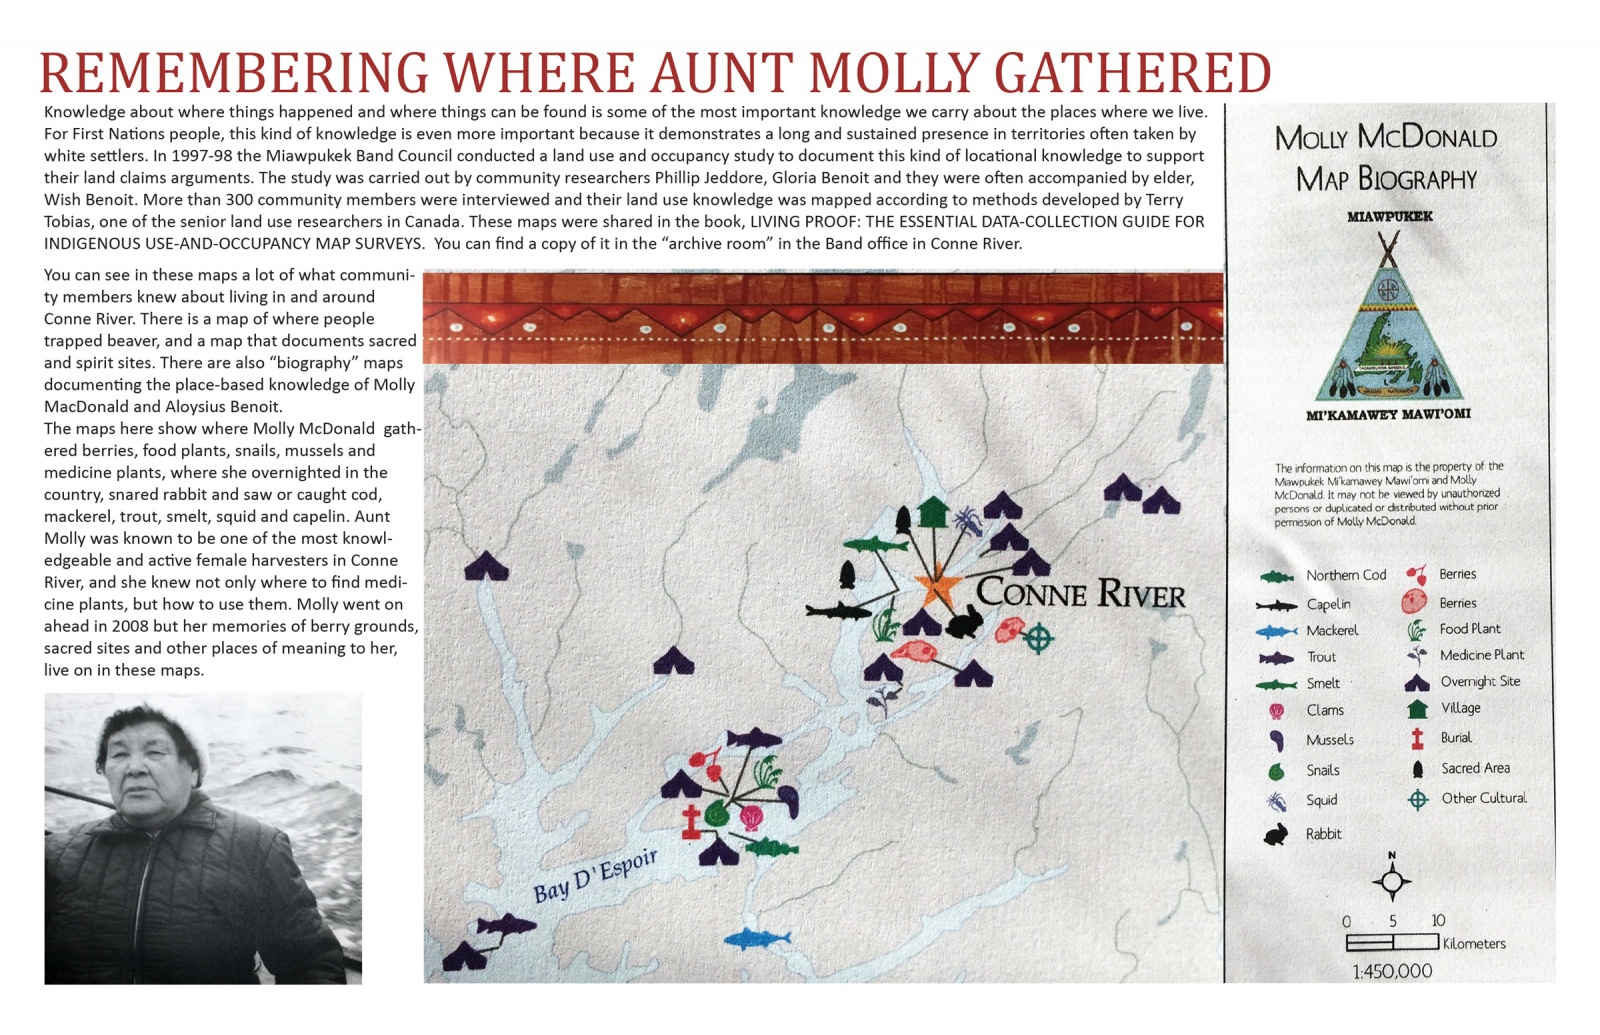 Remembering Where Aunt Molly Gathered